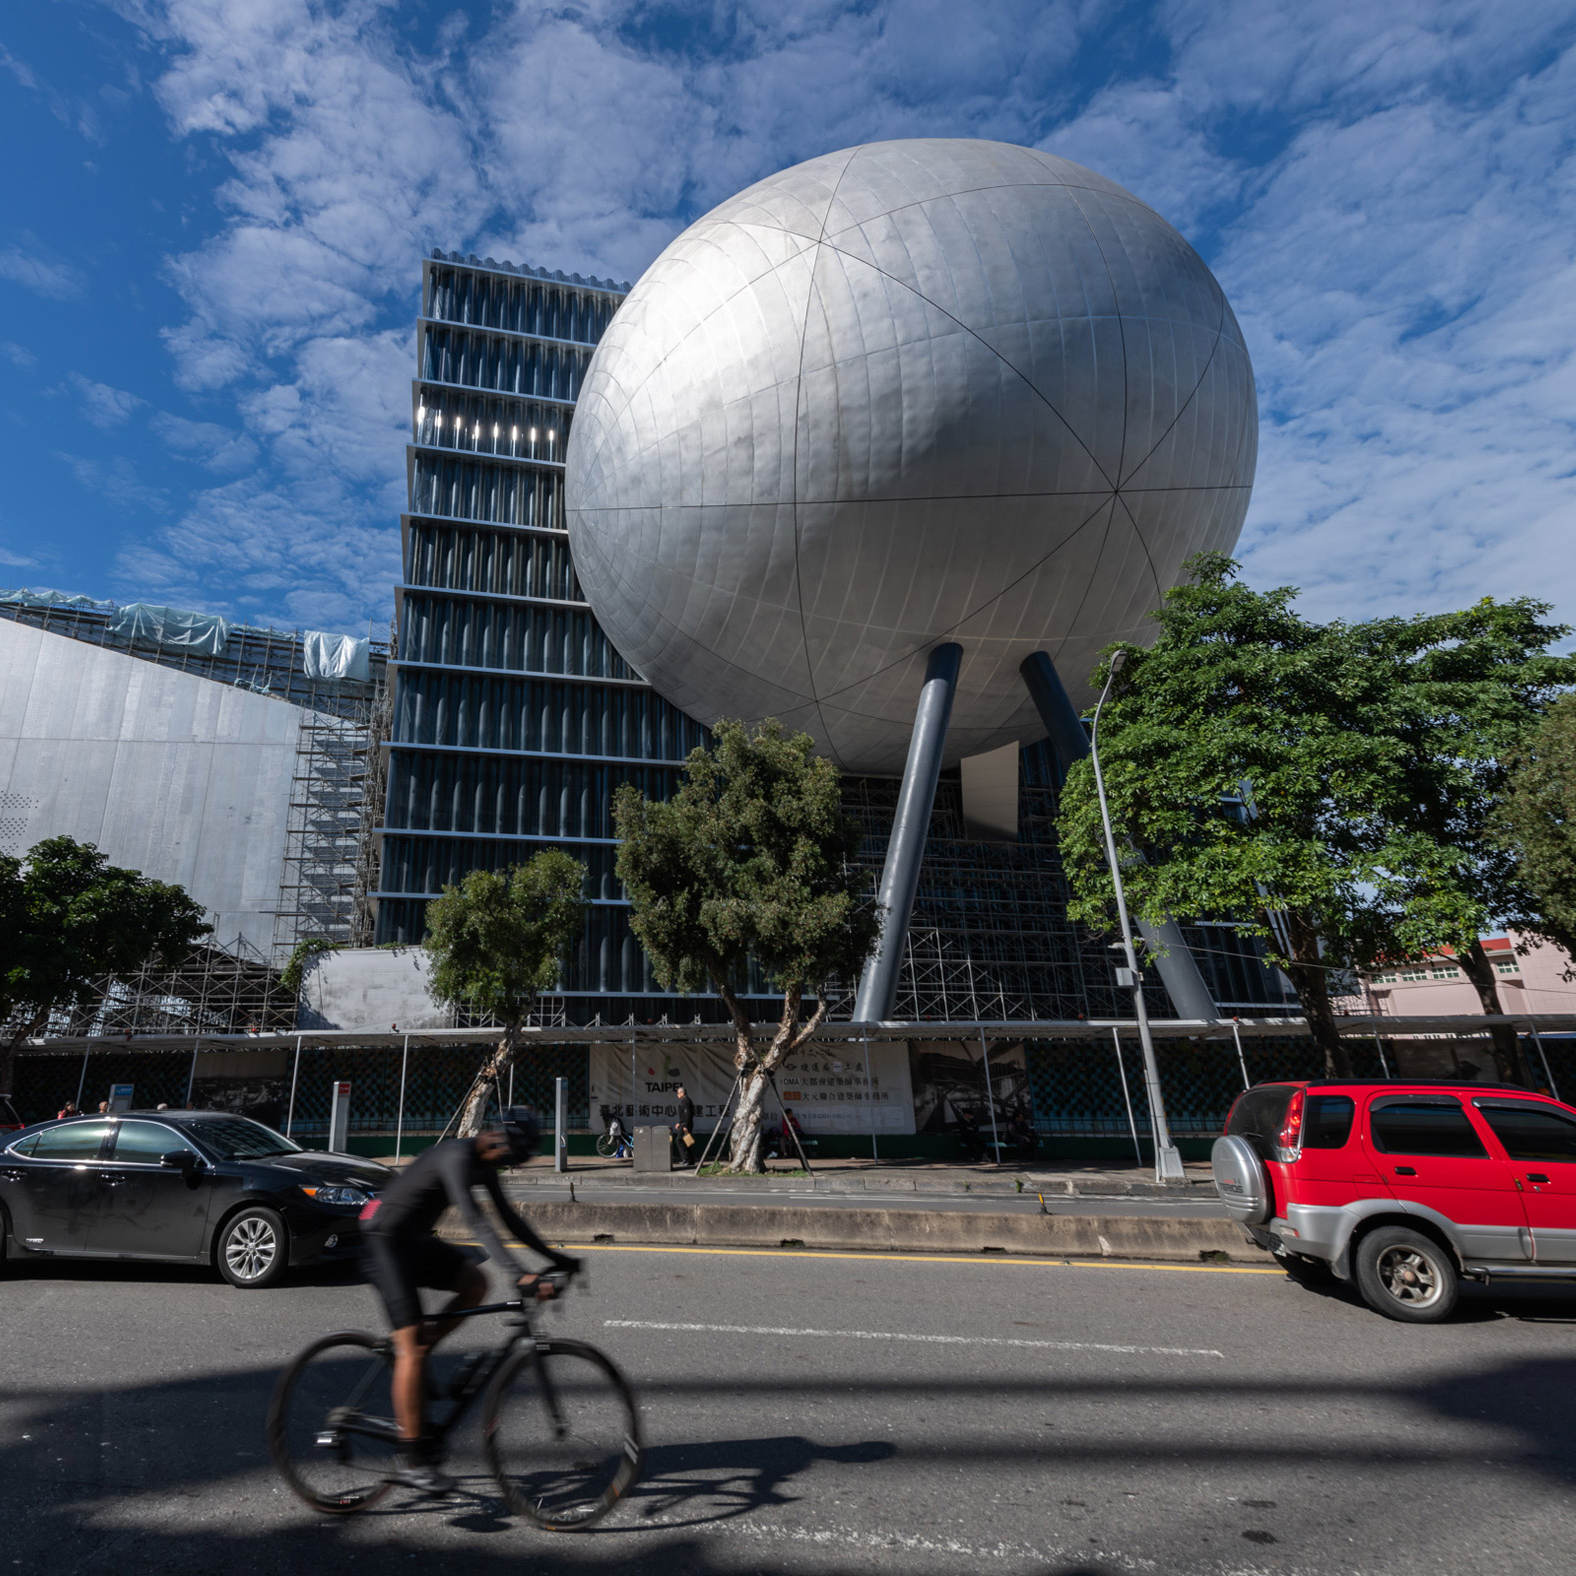 Spherical architecture: Taipei Performing Arts Center by OMA